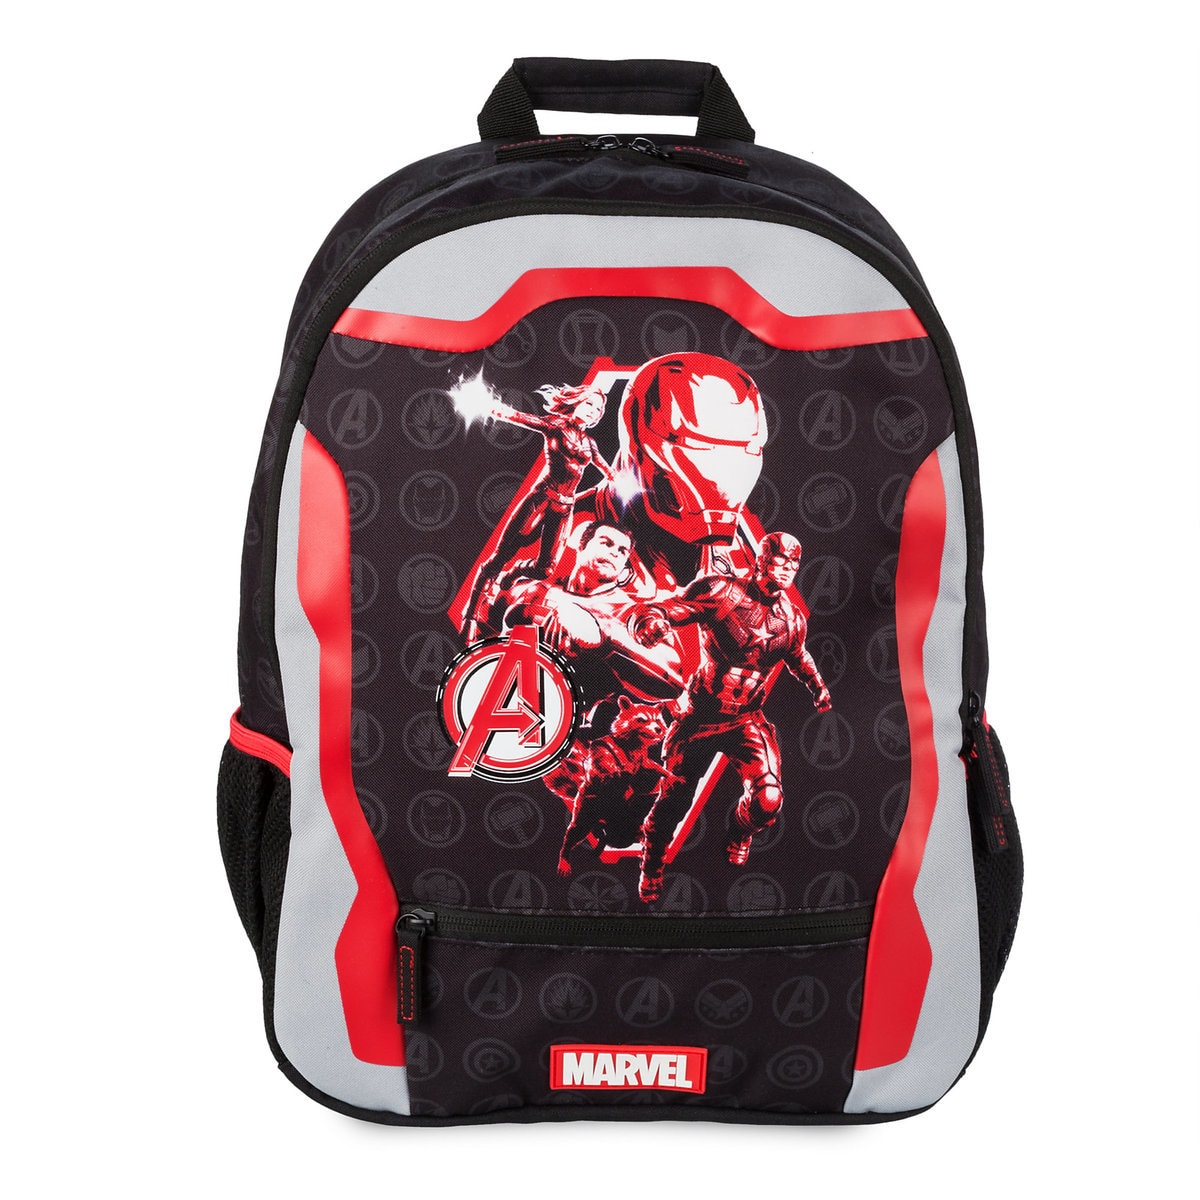 591d074f6b Product Image of Marvel's Avengers: Endgame Backpack - Personalized # 1